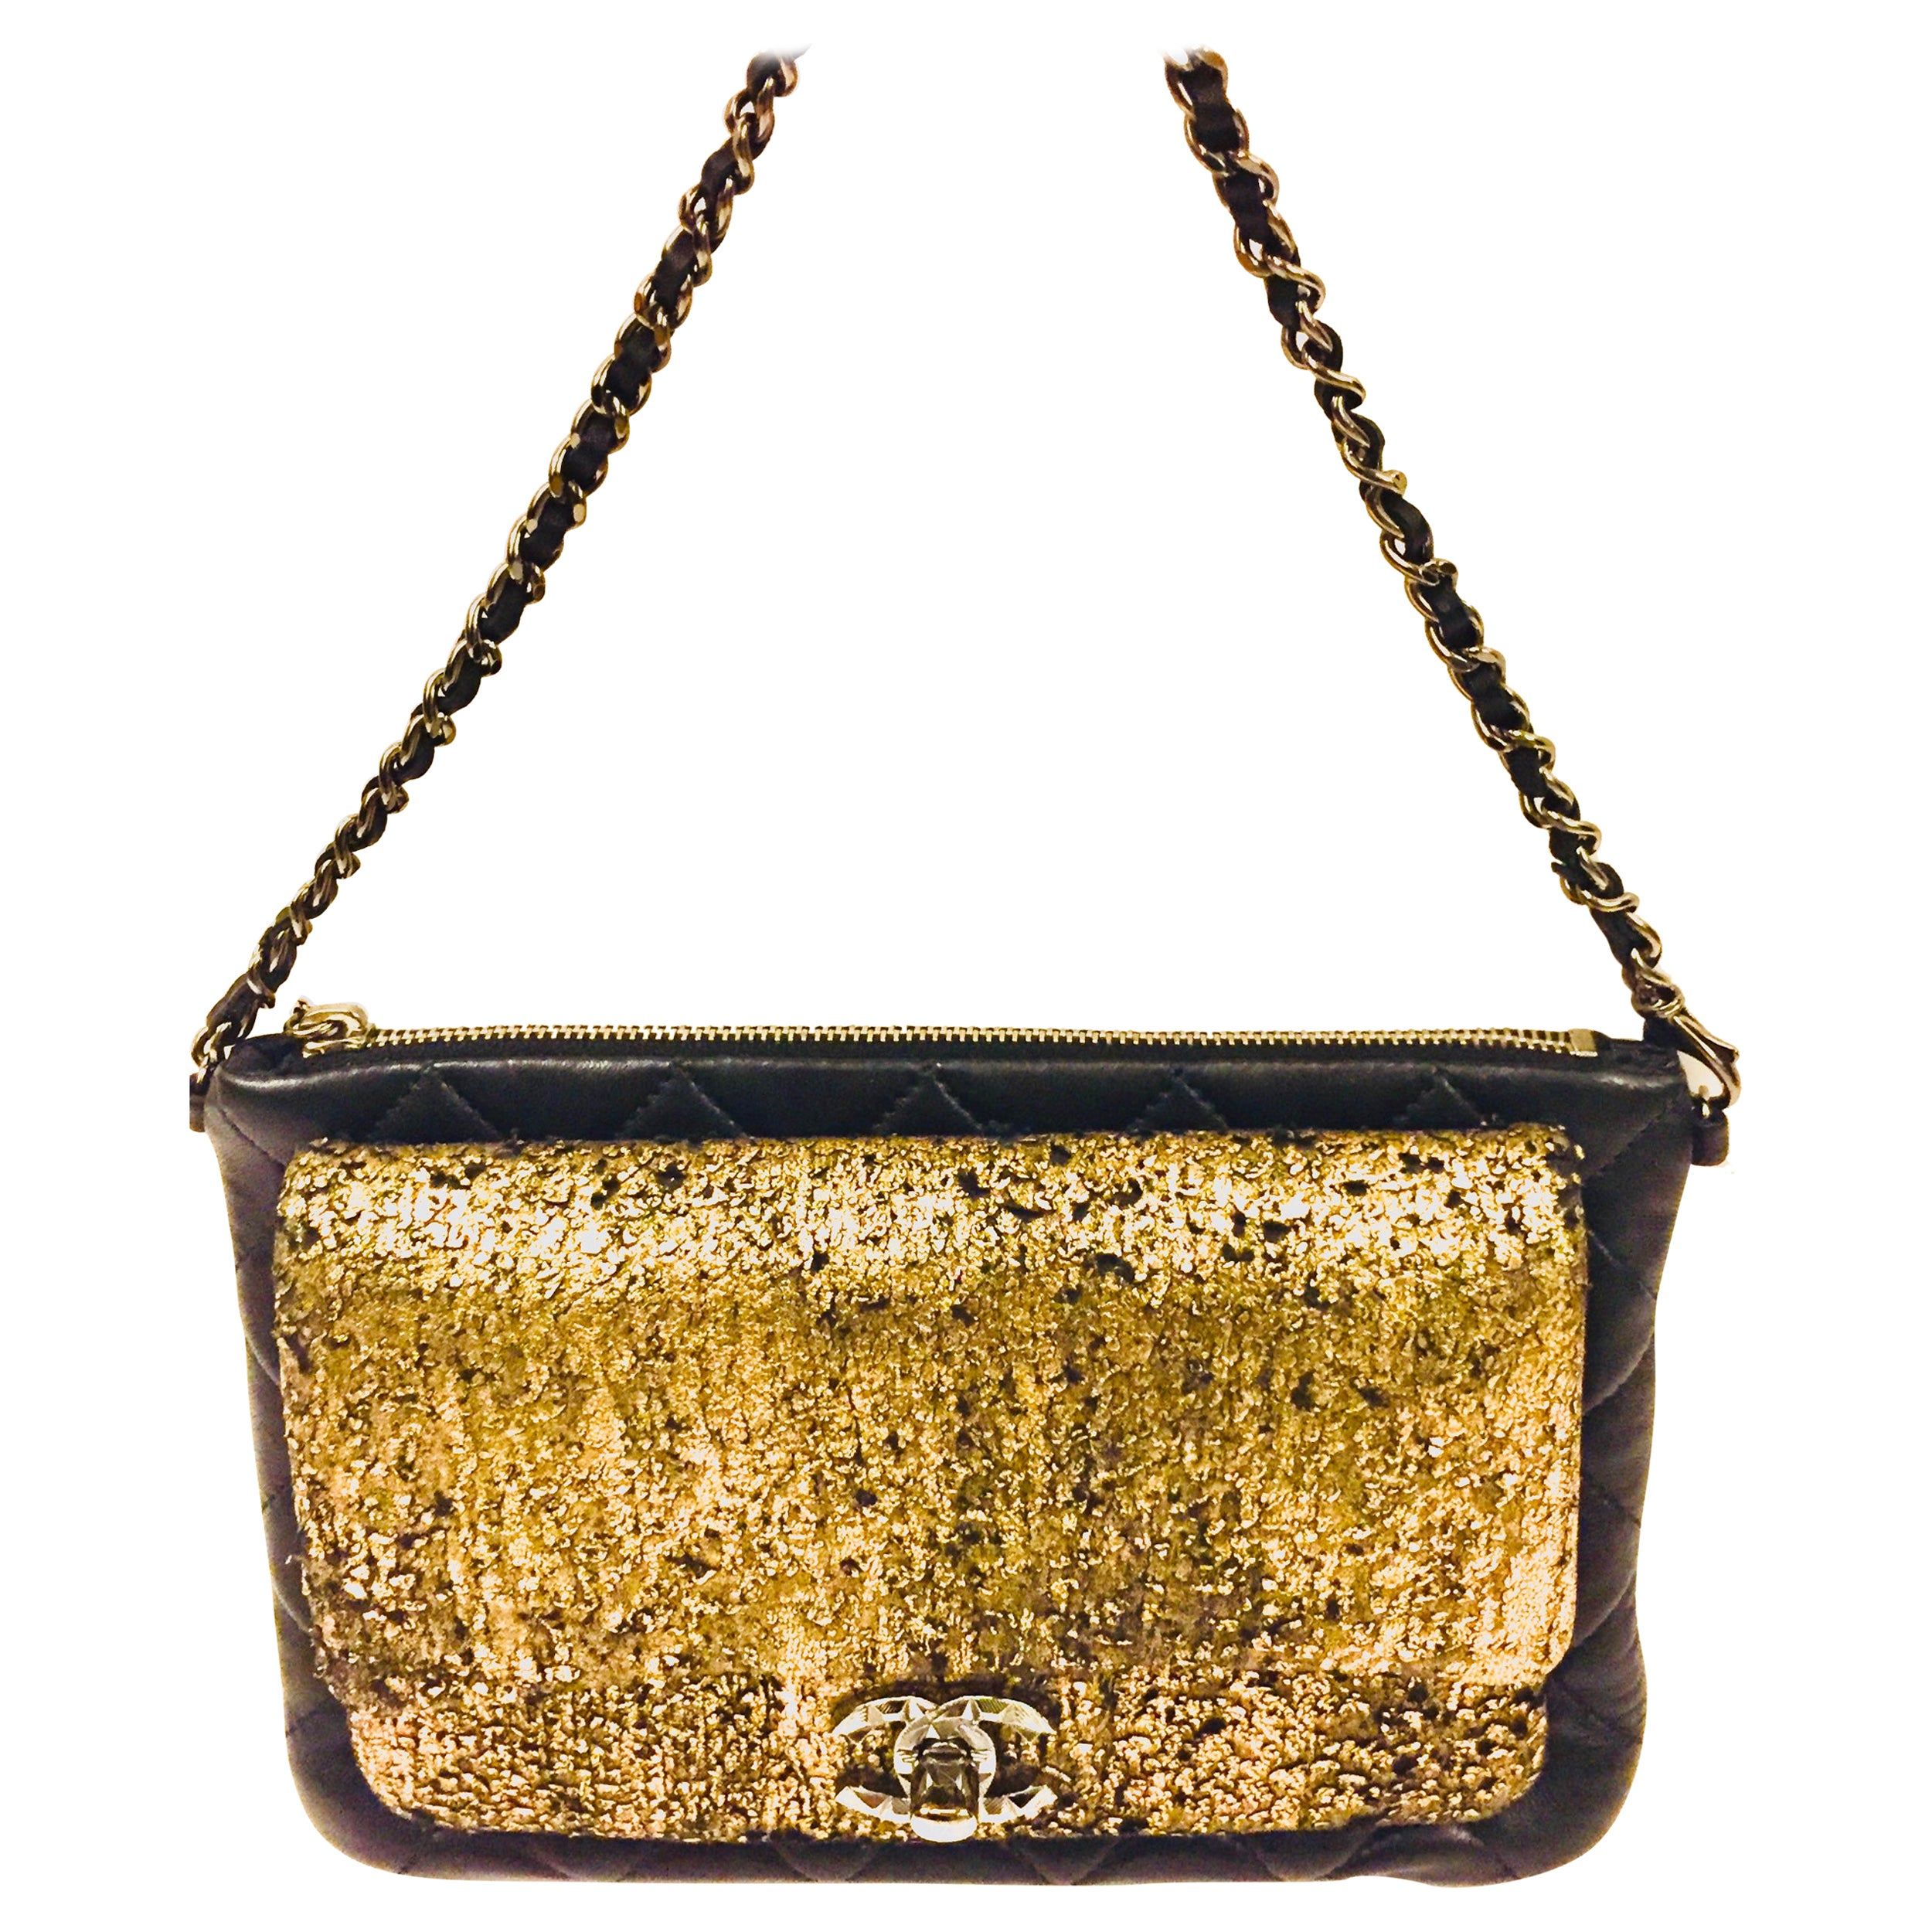 Chanel black and gold wallet/clutch with leather chain strap